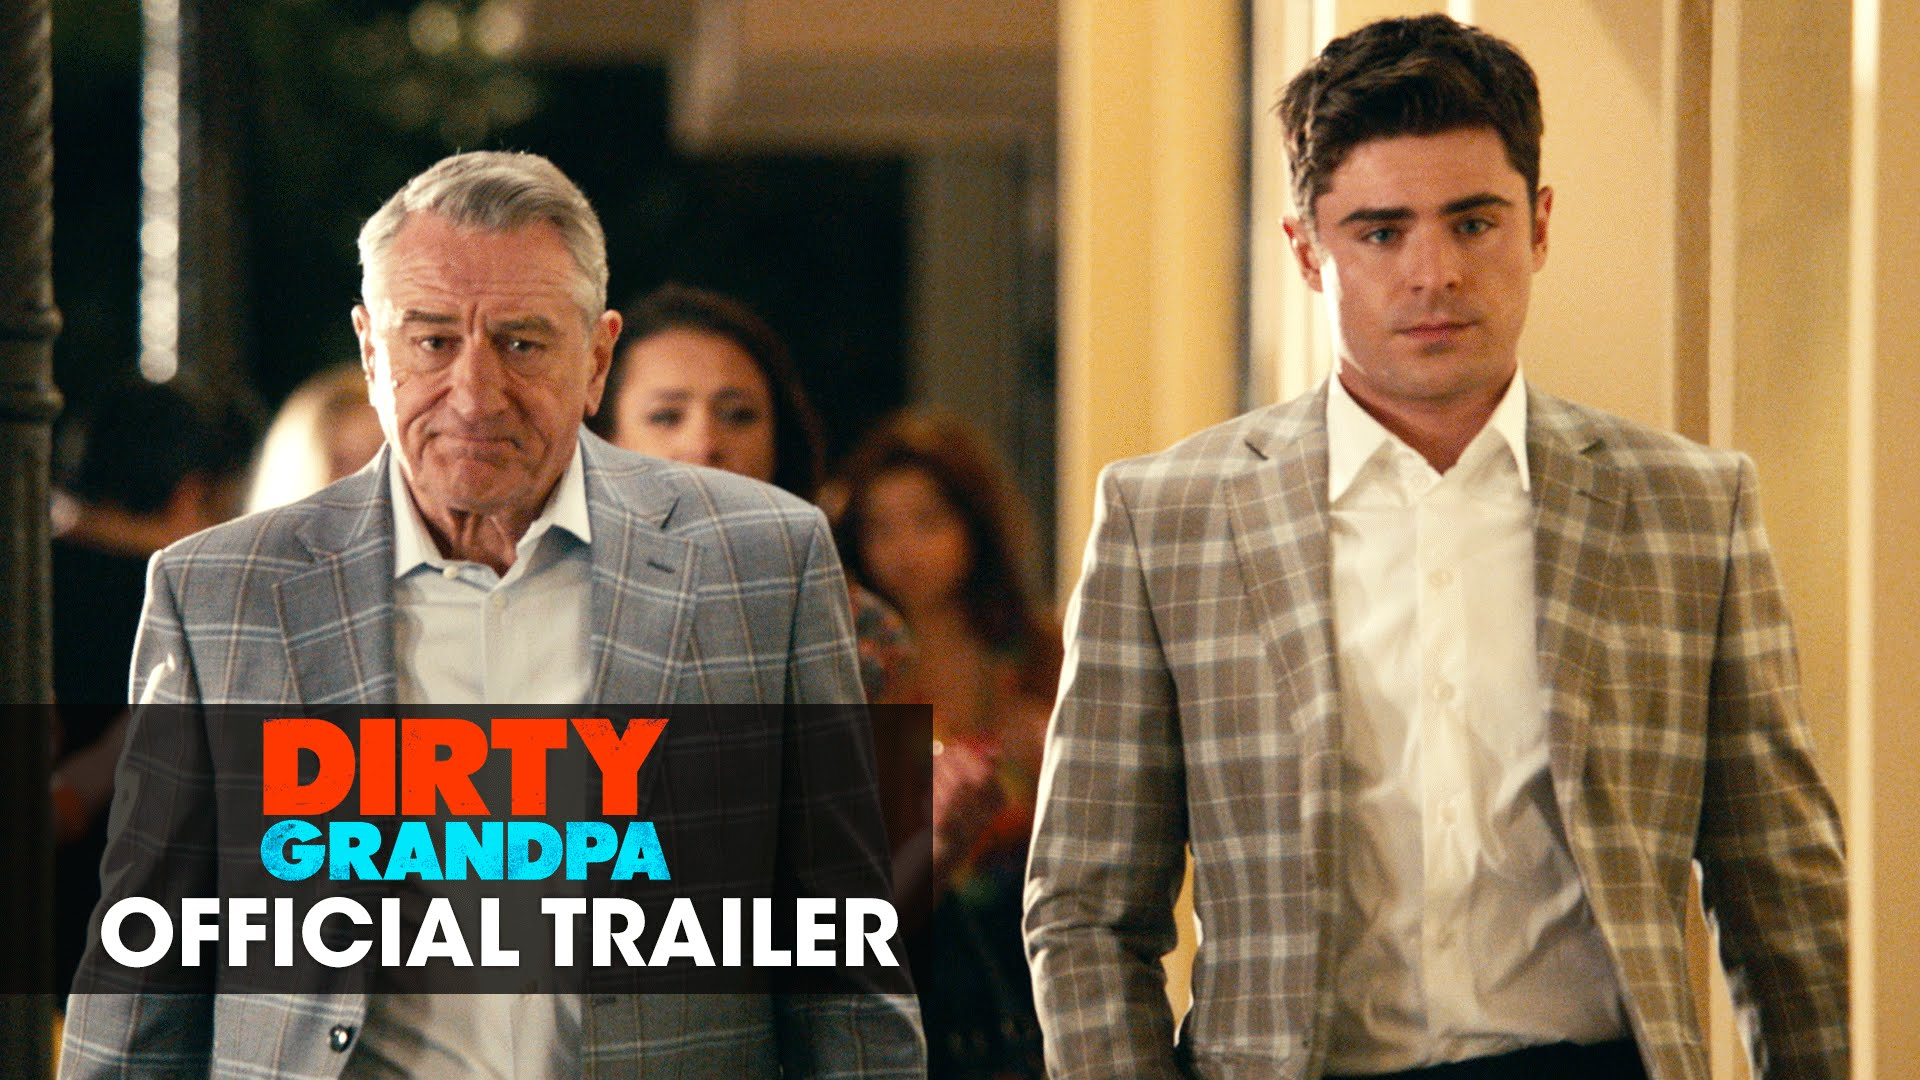 Dirty Grandpa (2016 Movie – Zac Efron, Robert De Niro) – Official Green Band Trailer